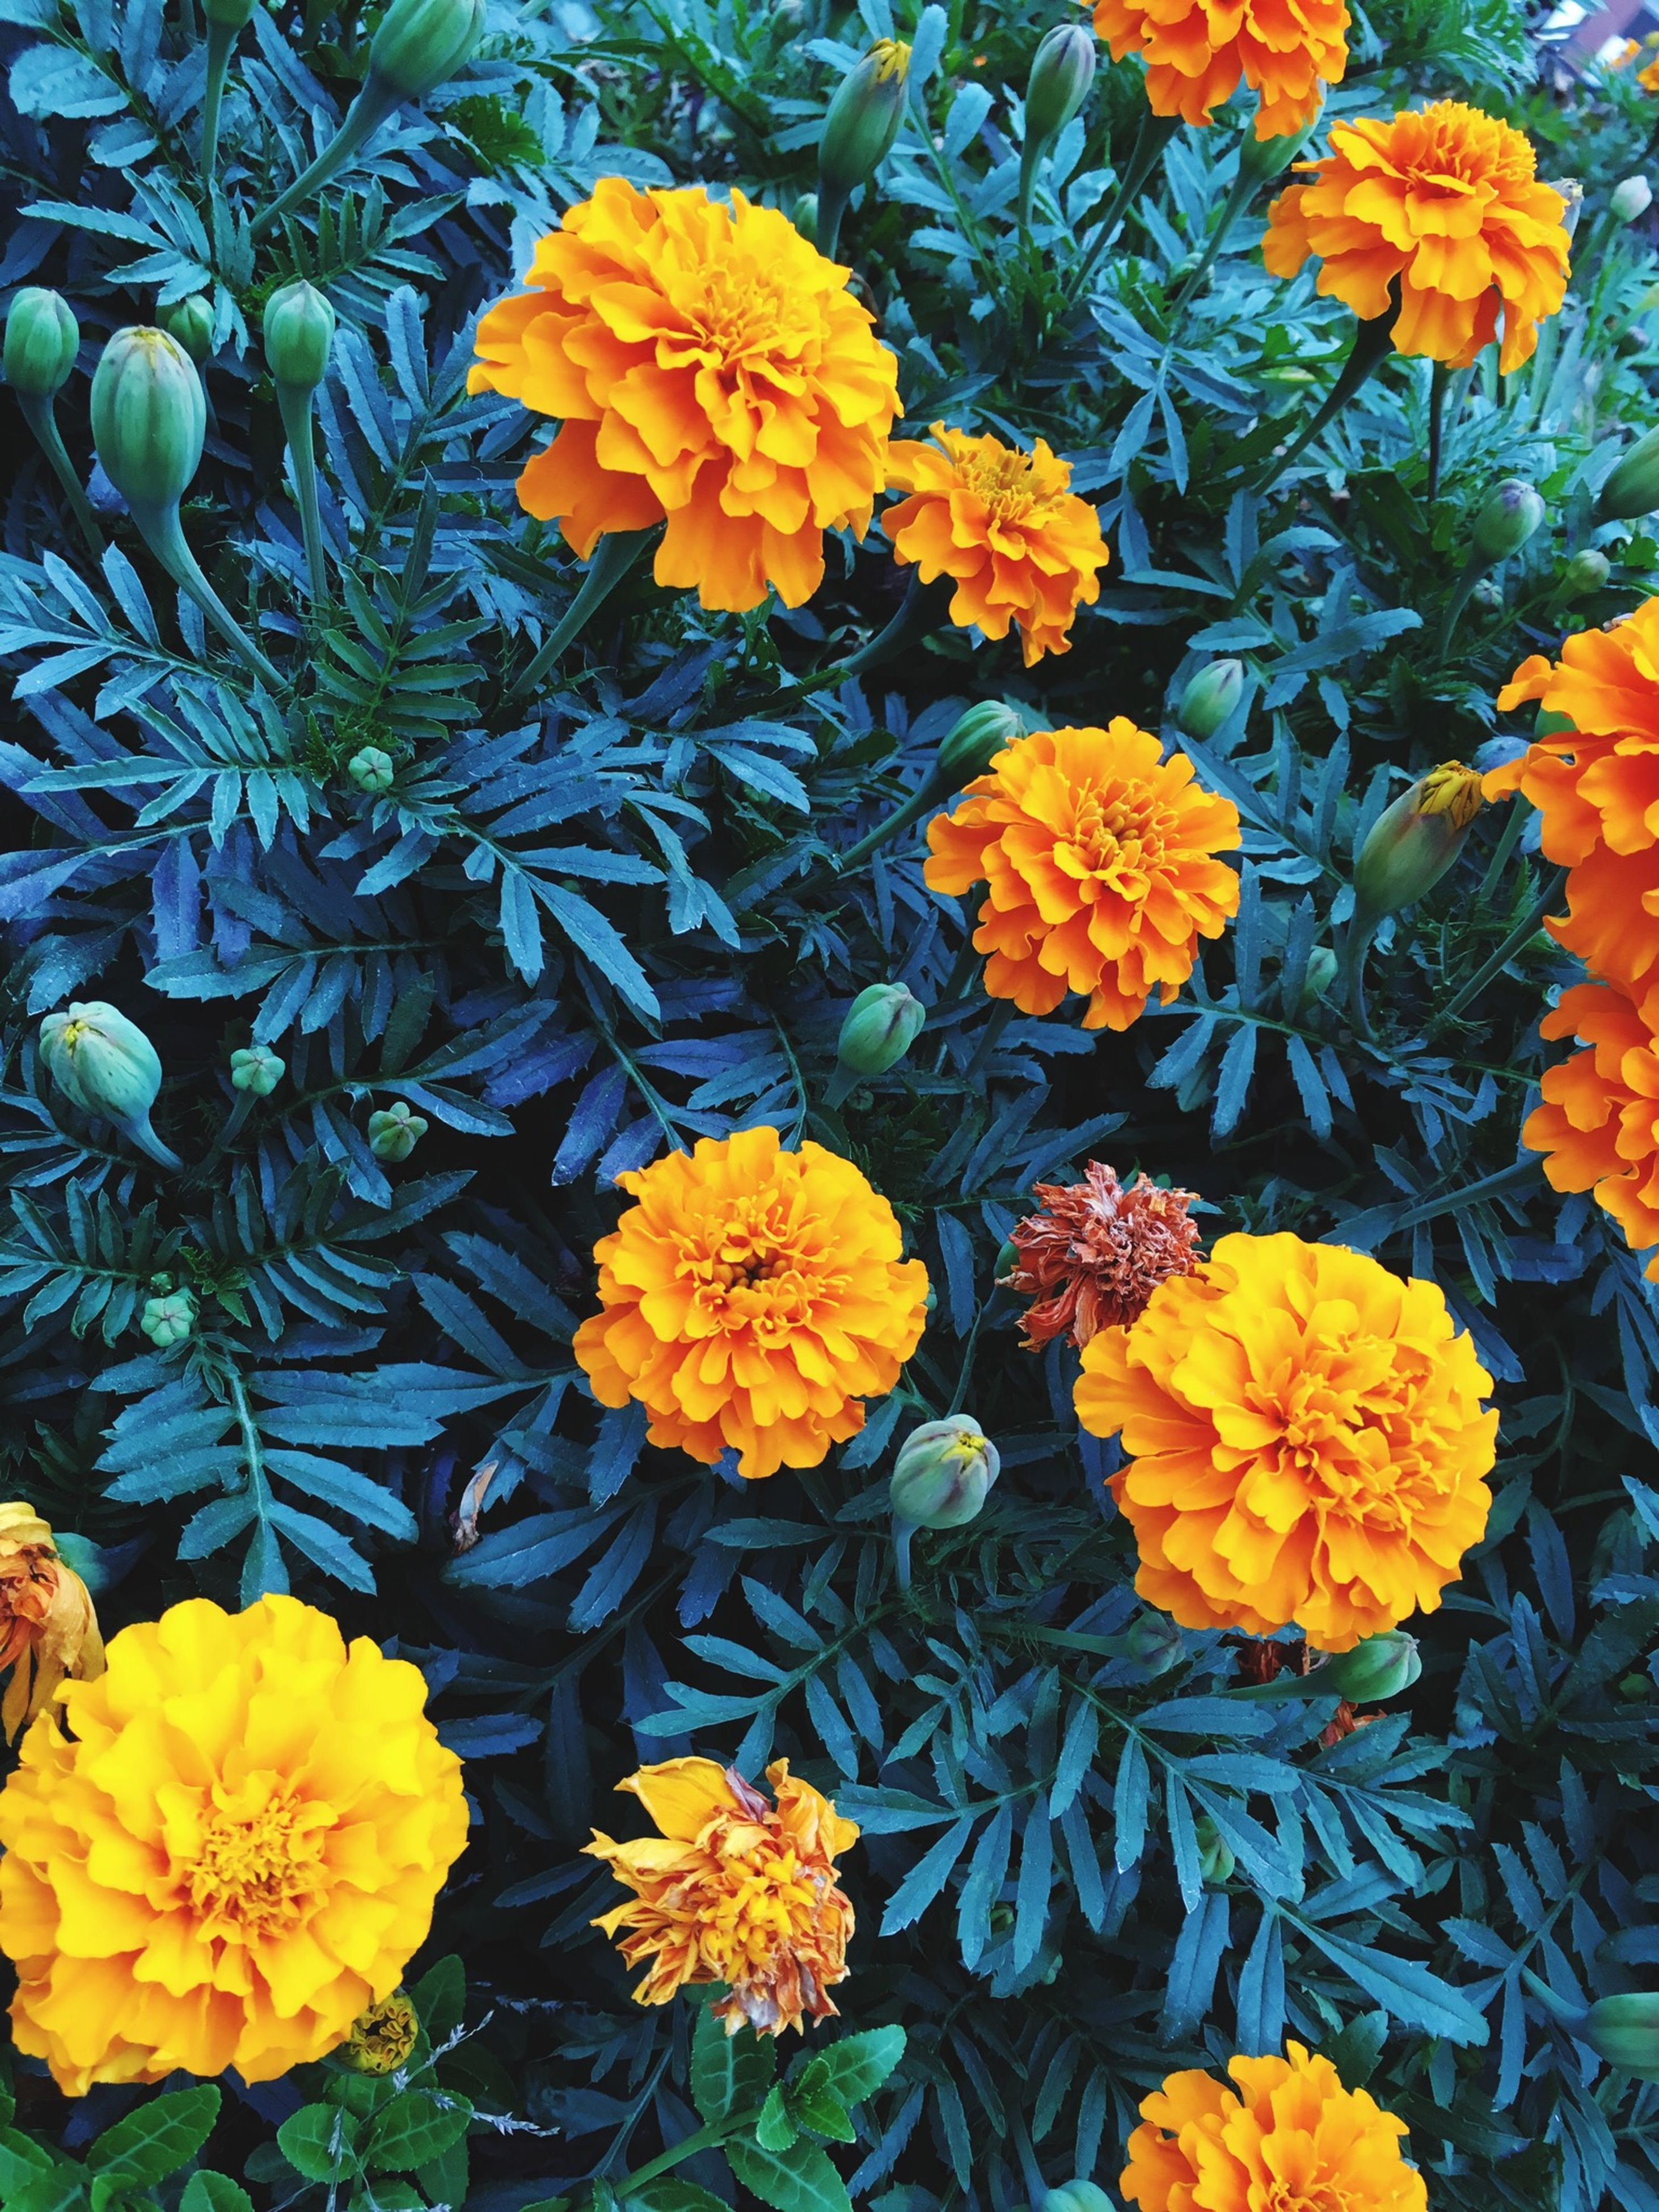 flower, freshness, yellow, fragility, petal, beauty in nature, growth, flower head, blooming, nature, plant, high angle view, full frame, abundance, backgrounds, blossom, in bloom, vibrant color, leaf, springtime